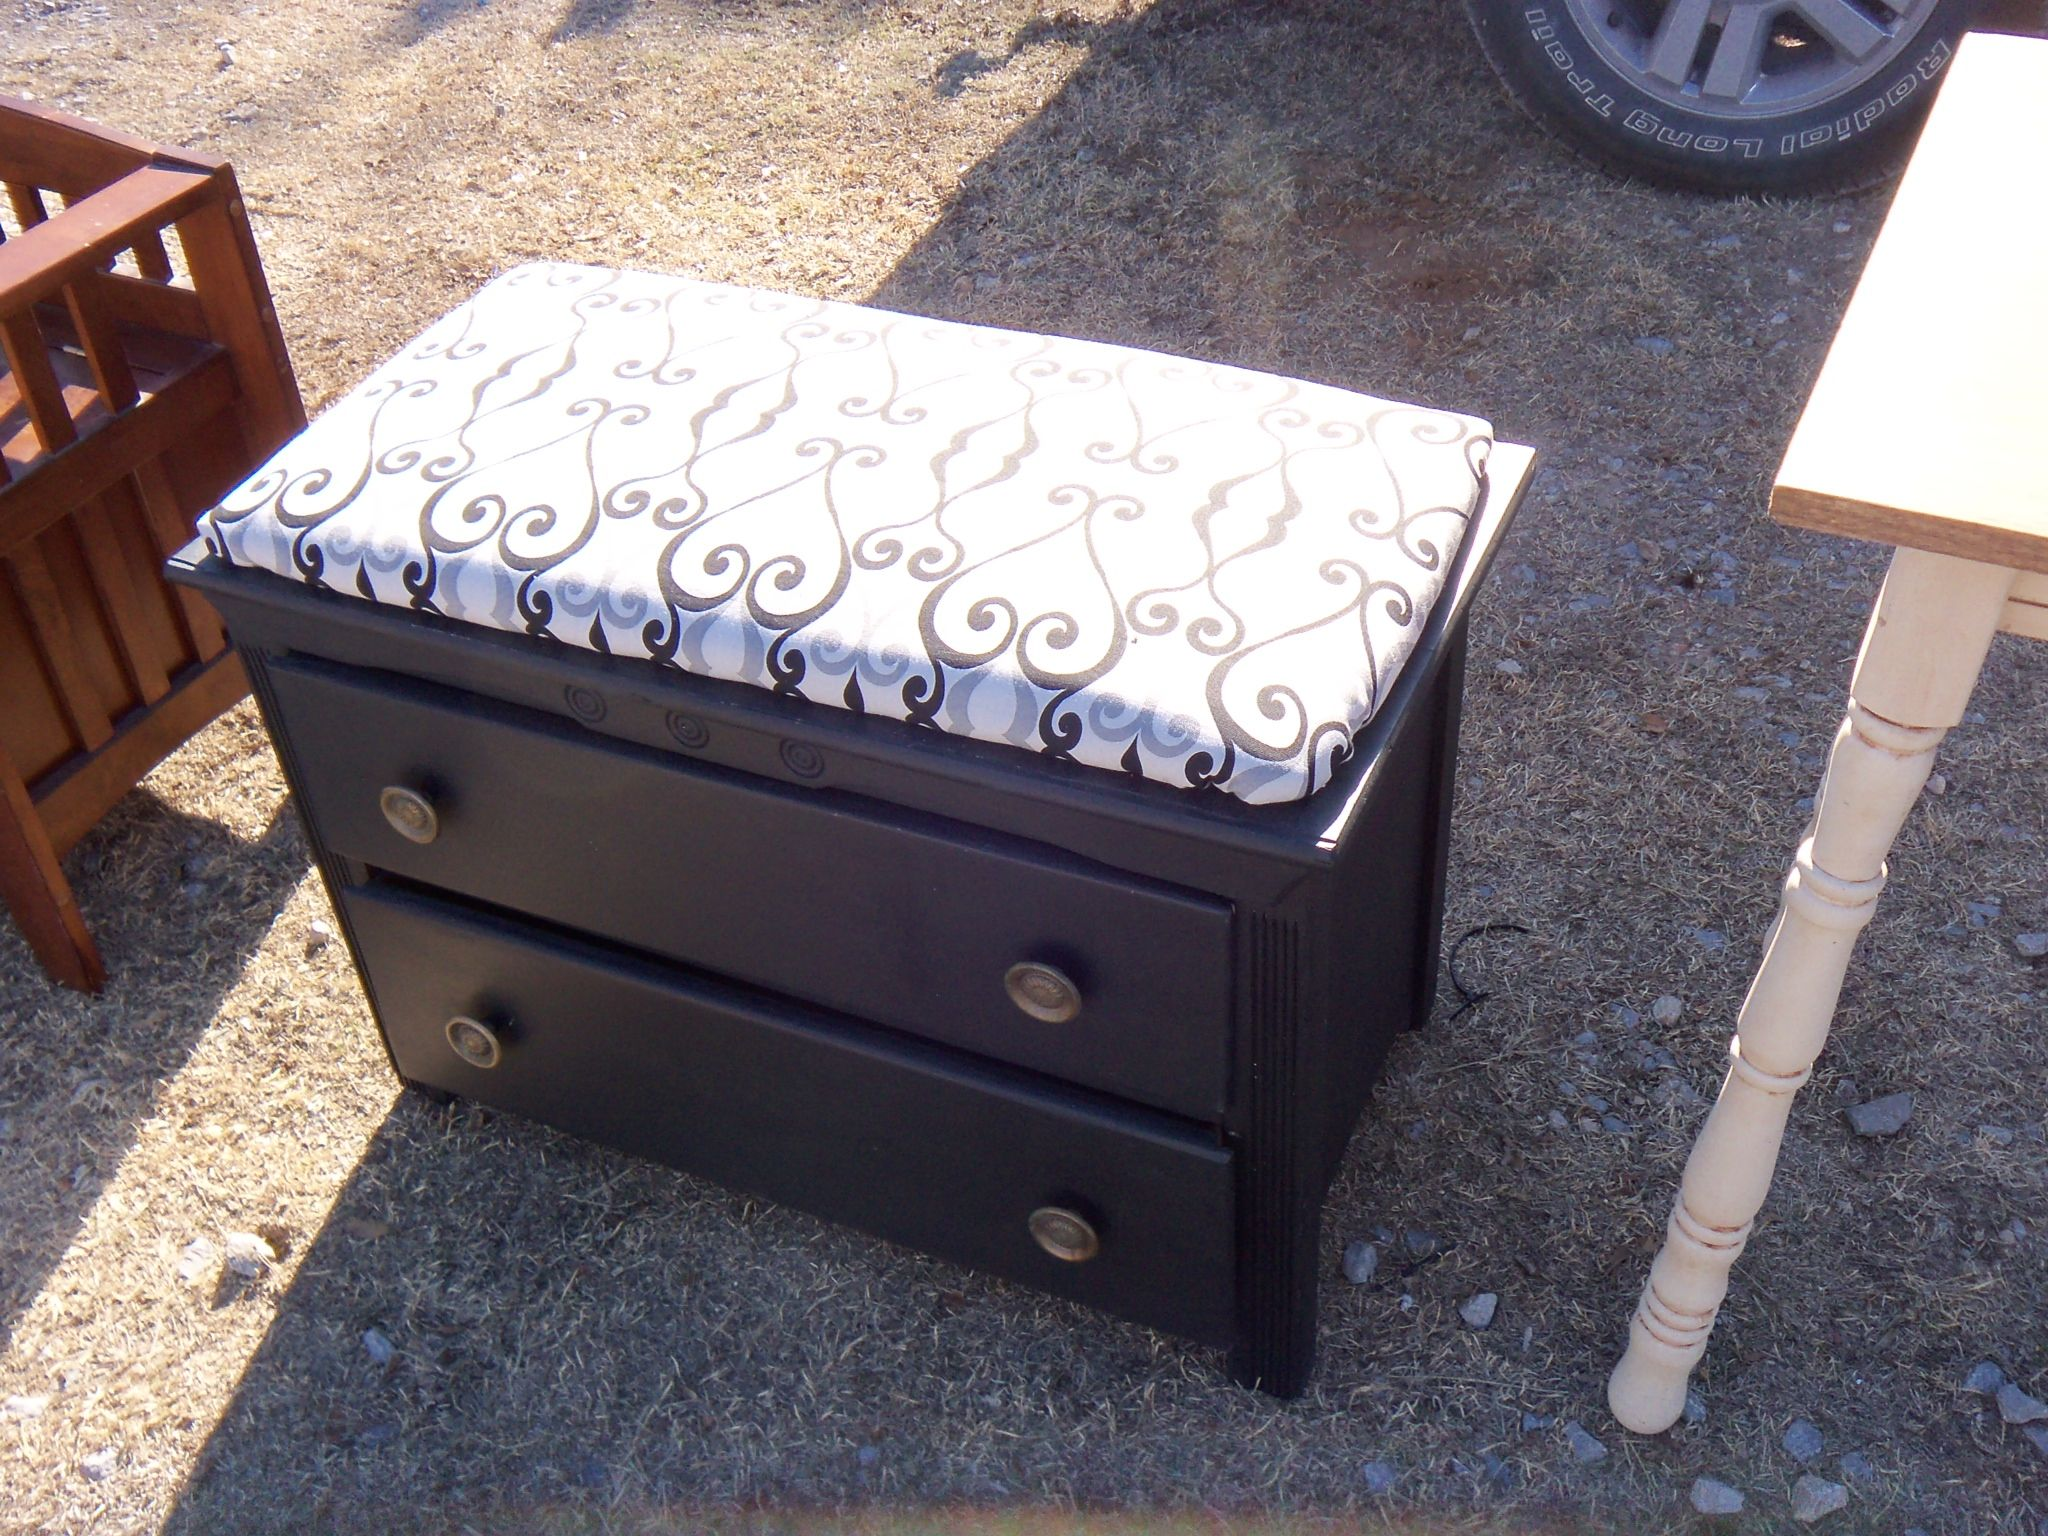 Astonishing Old Dresser Converted To A Comfy Bench Seat With Storage Caraccident5 Cool Chair Designs And Ideas Caraccident5Info